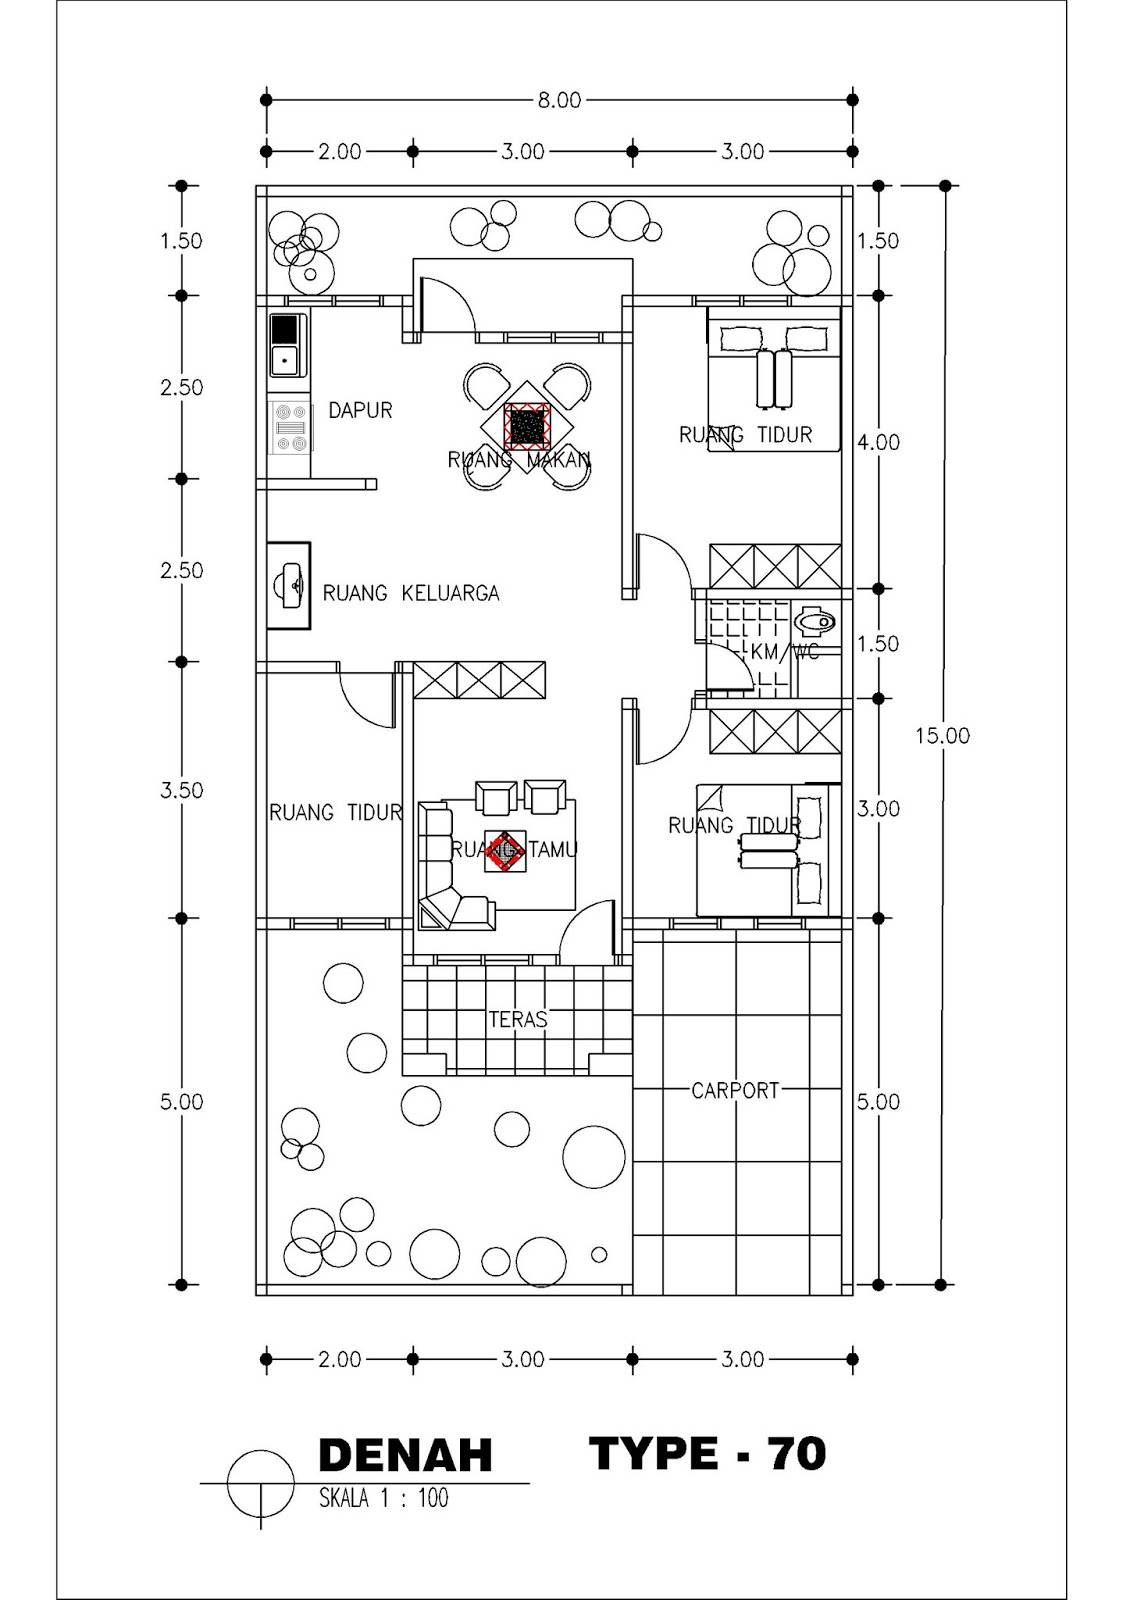 Layout Rumah Type 70 Denah Rumah Minimalis Type 70 Traffic Club